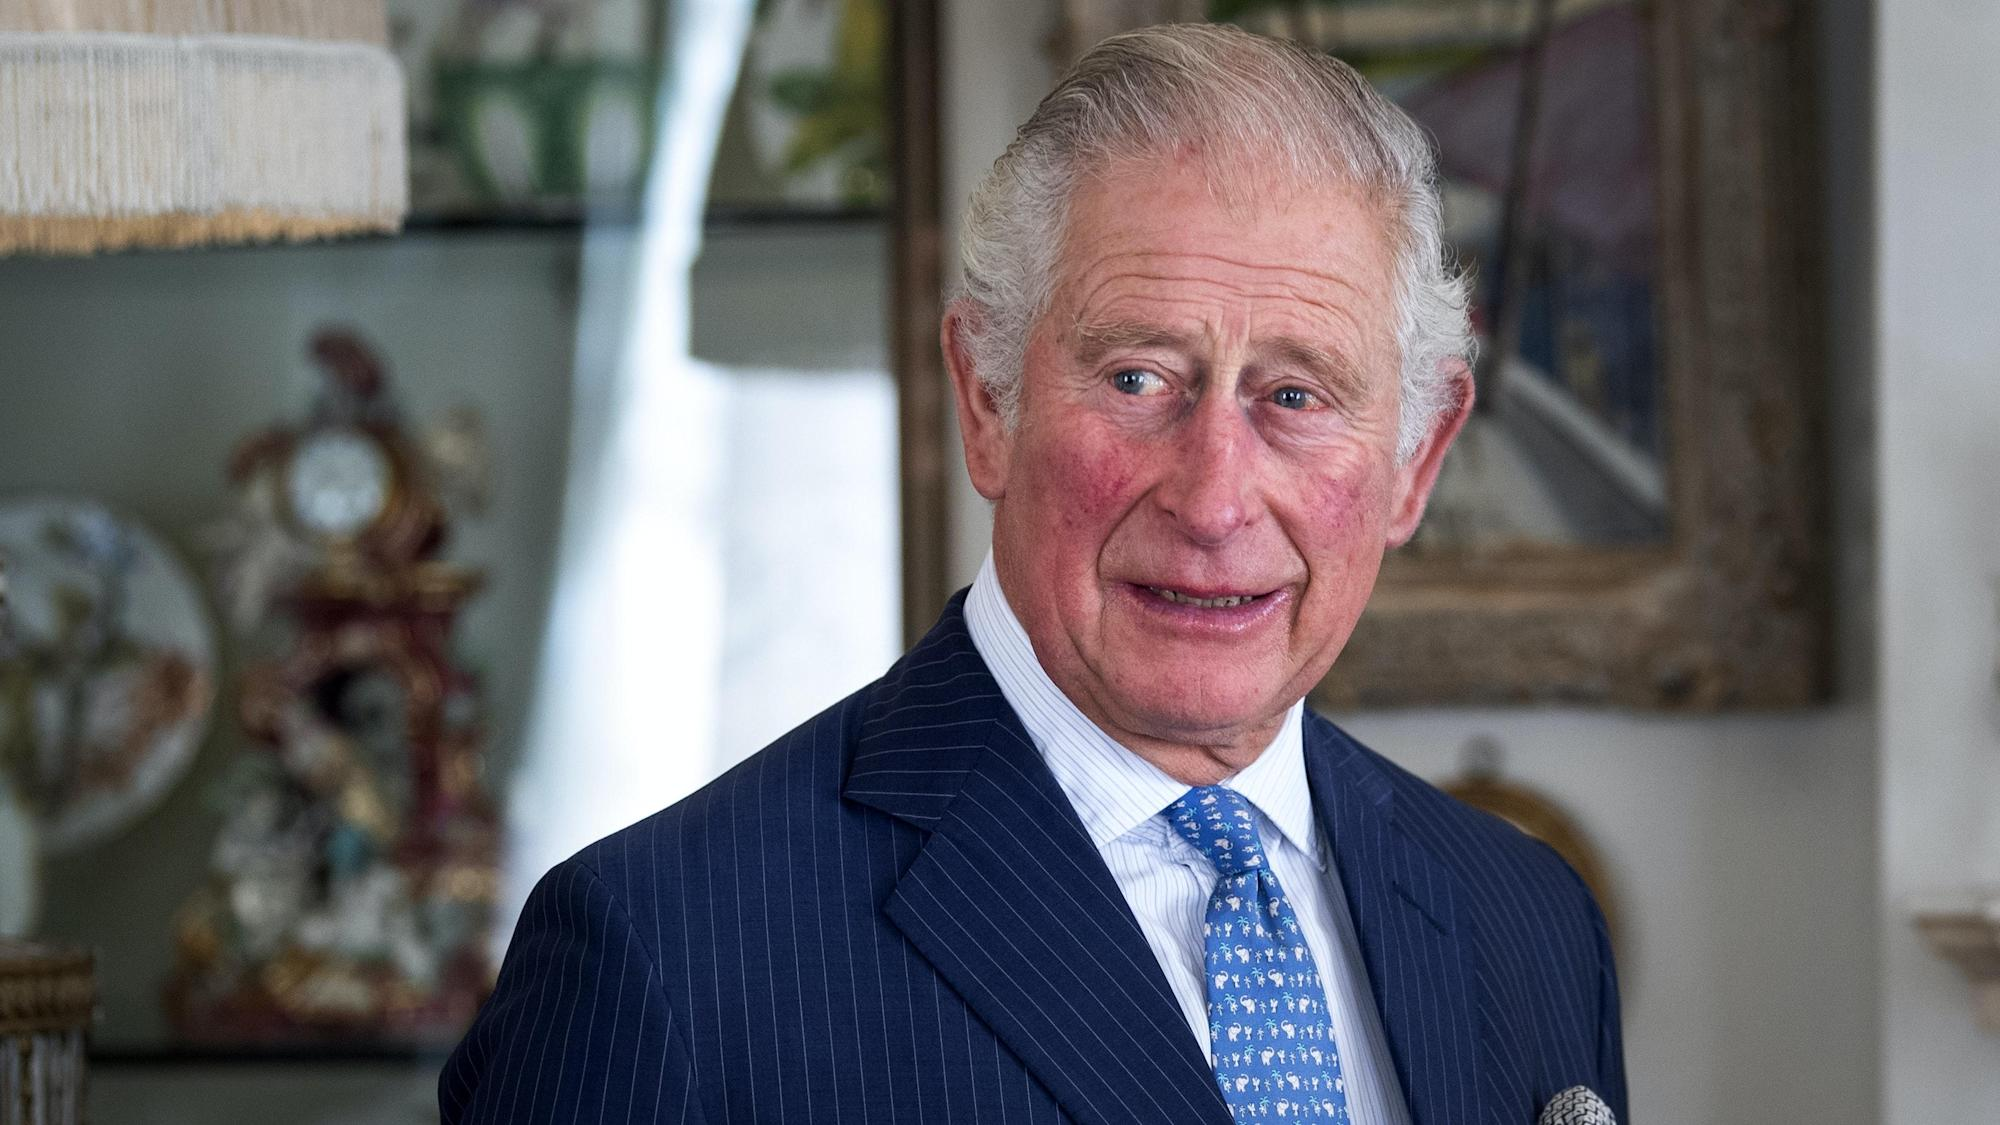 Charles to urge UK and Germany to 'reaffirm our bond' in speech at Bundestag